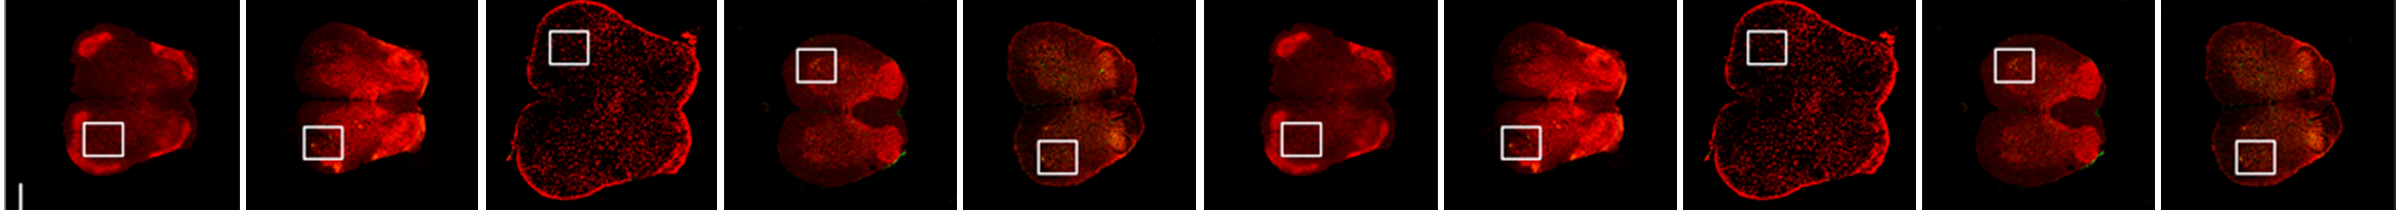 Figure 7. Immunofluorescence staining of the lumbar spinal cord section of SOD1G93A transgenic mouse transplanted with F3.Olig2-Shh cells.